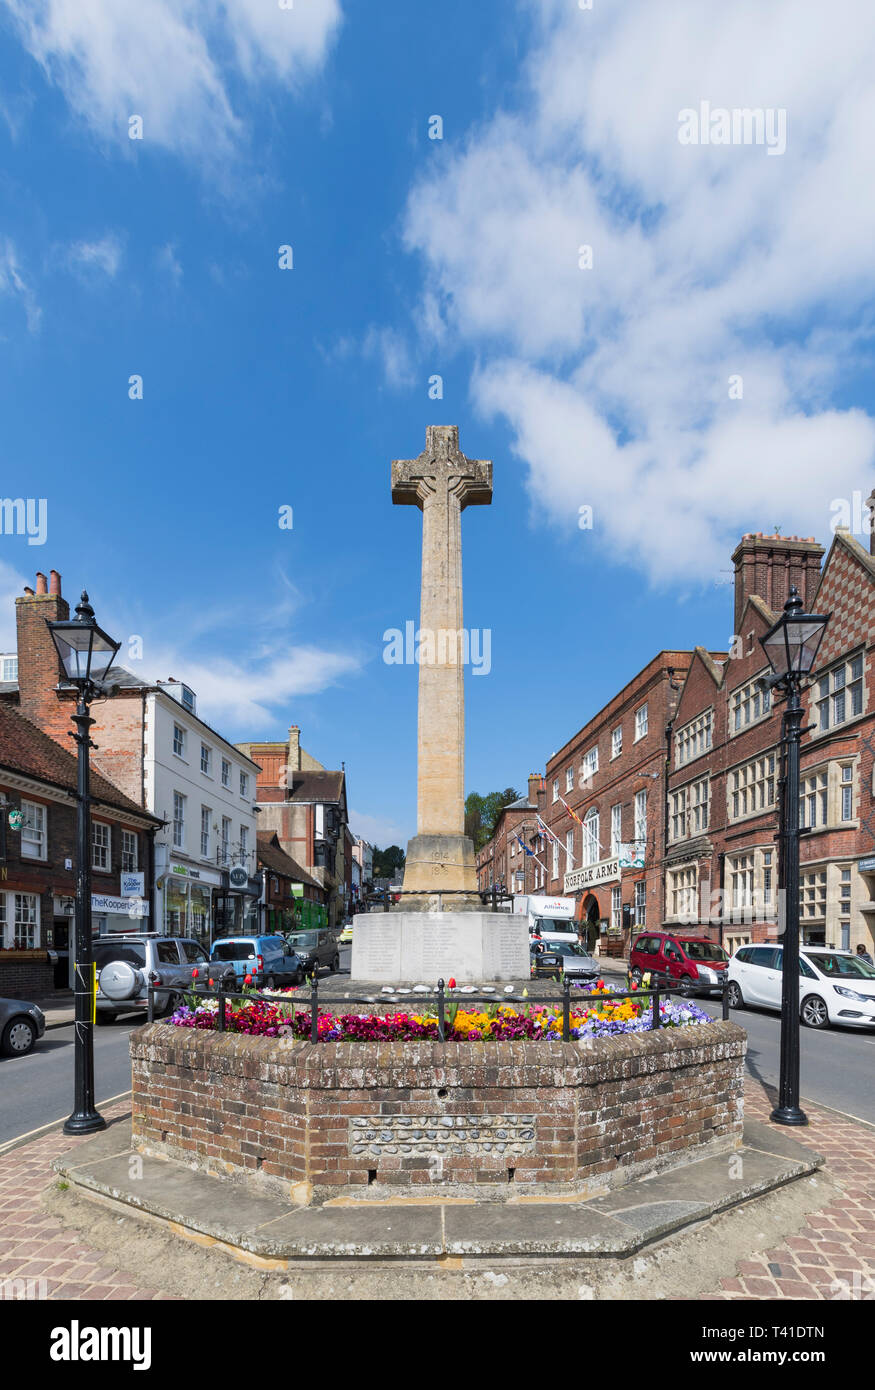 WWI and WWII war memorial in the High Street in Spring in Arundel, West Sussex, England, UK. Portrait. - Stock Image